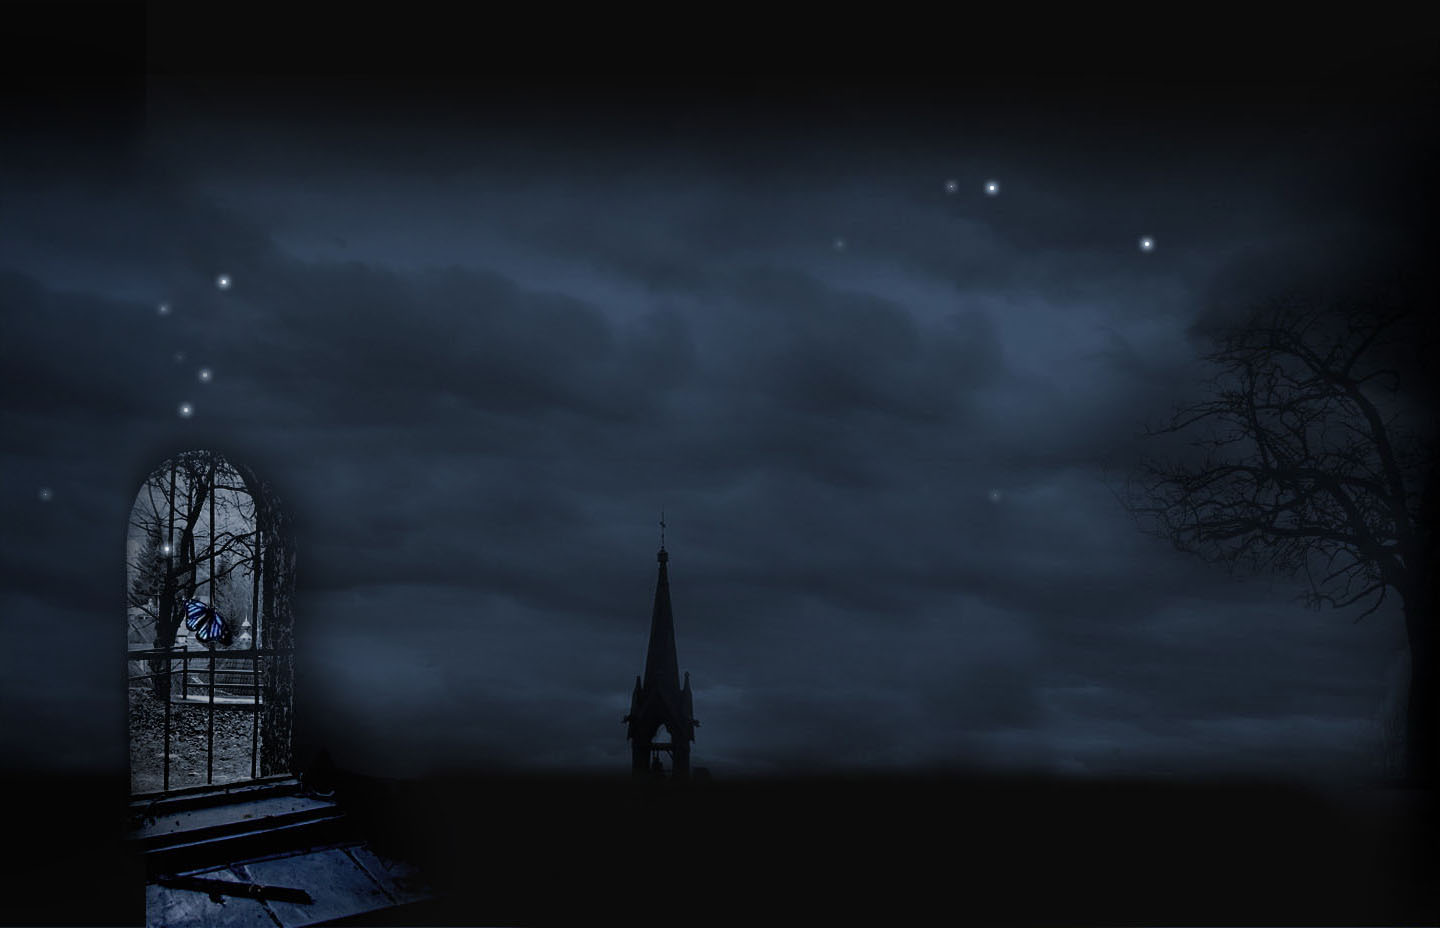 Dark - Building Wallpaper